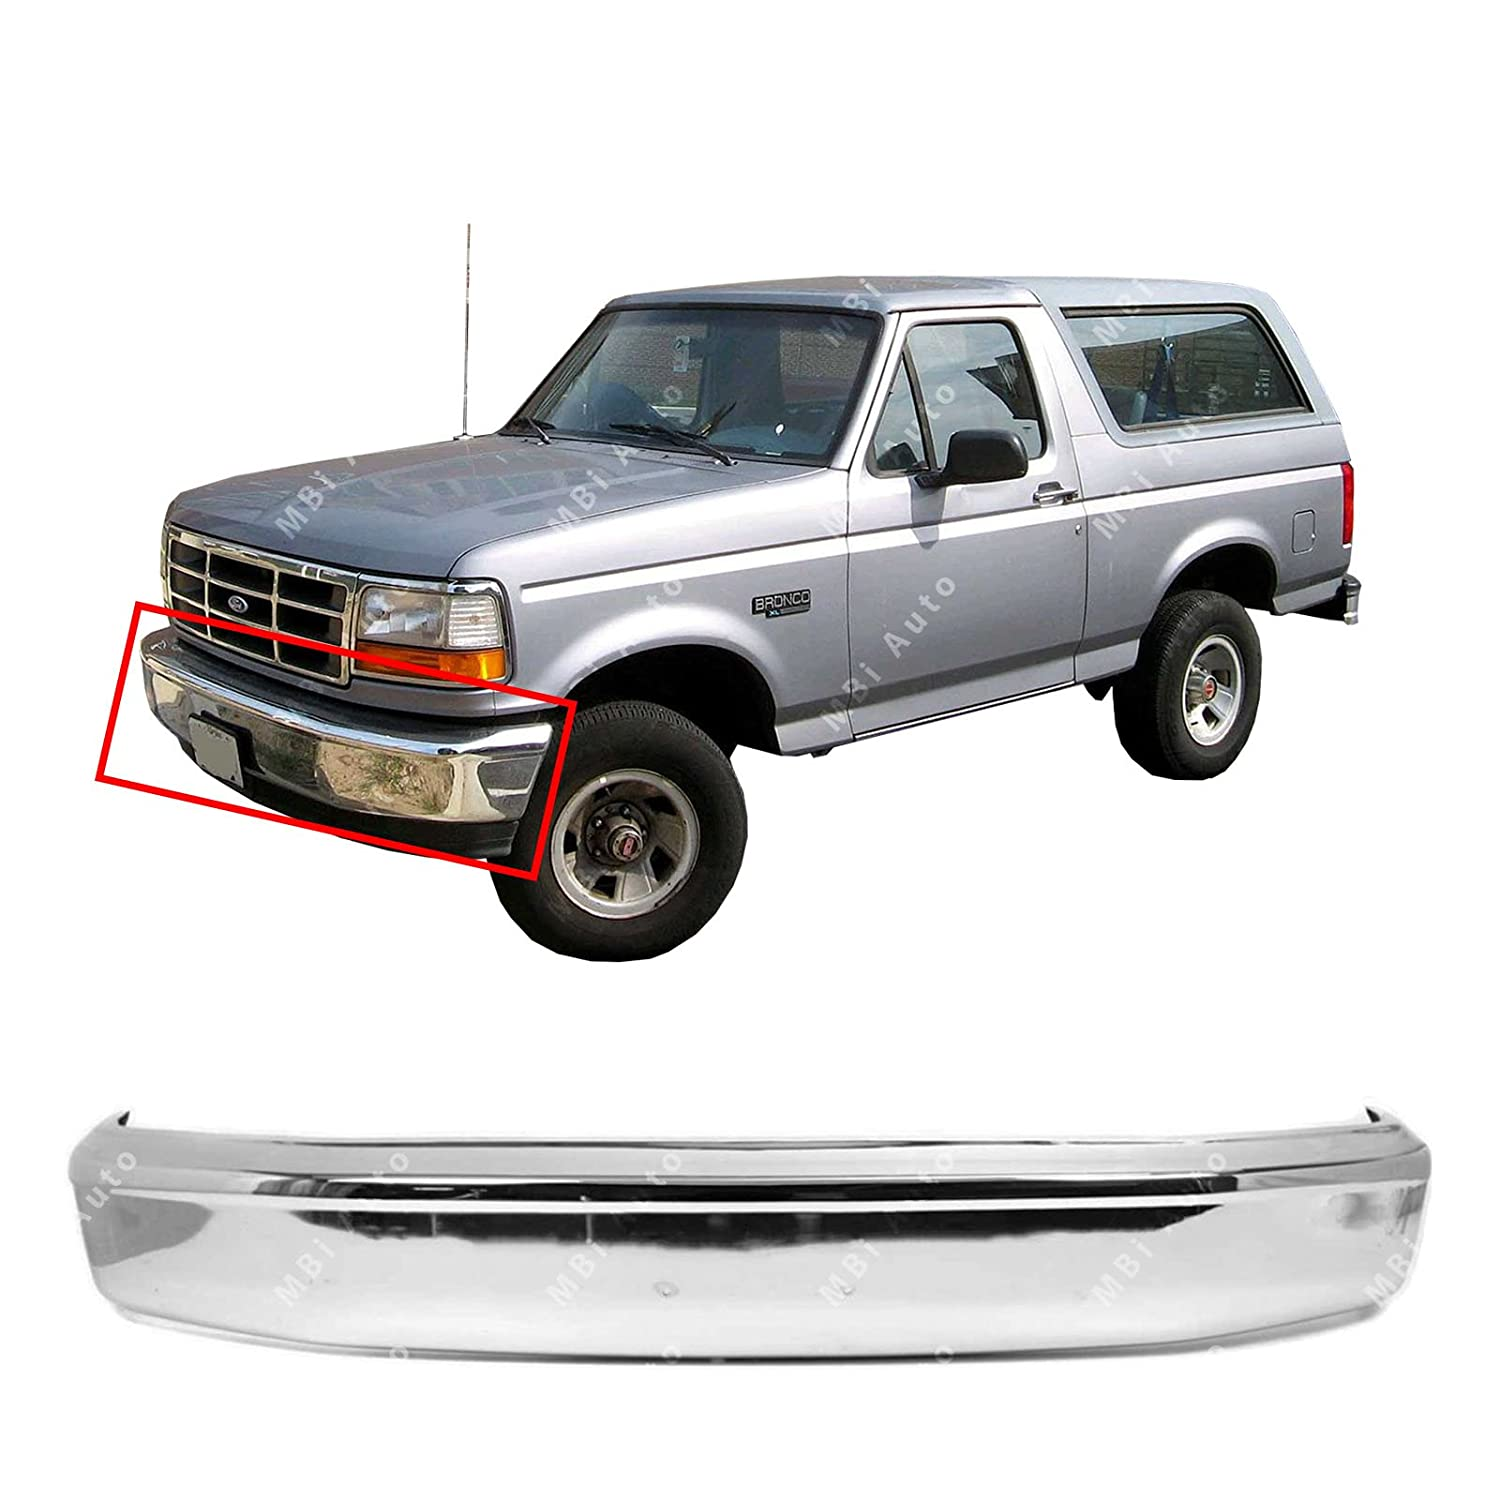 MBI AUTO - Chrome, Steel Front Bumper Face Bar for 1992-1996 Ford F150 & Bronco W/Out Pad Holes 92-96, FO1002236